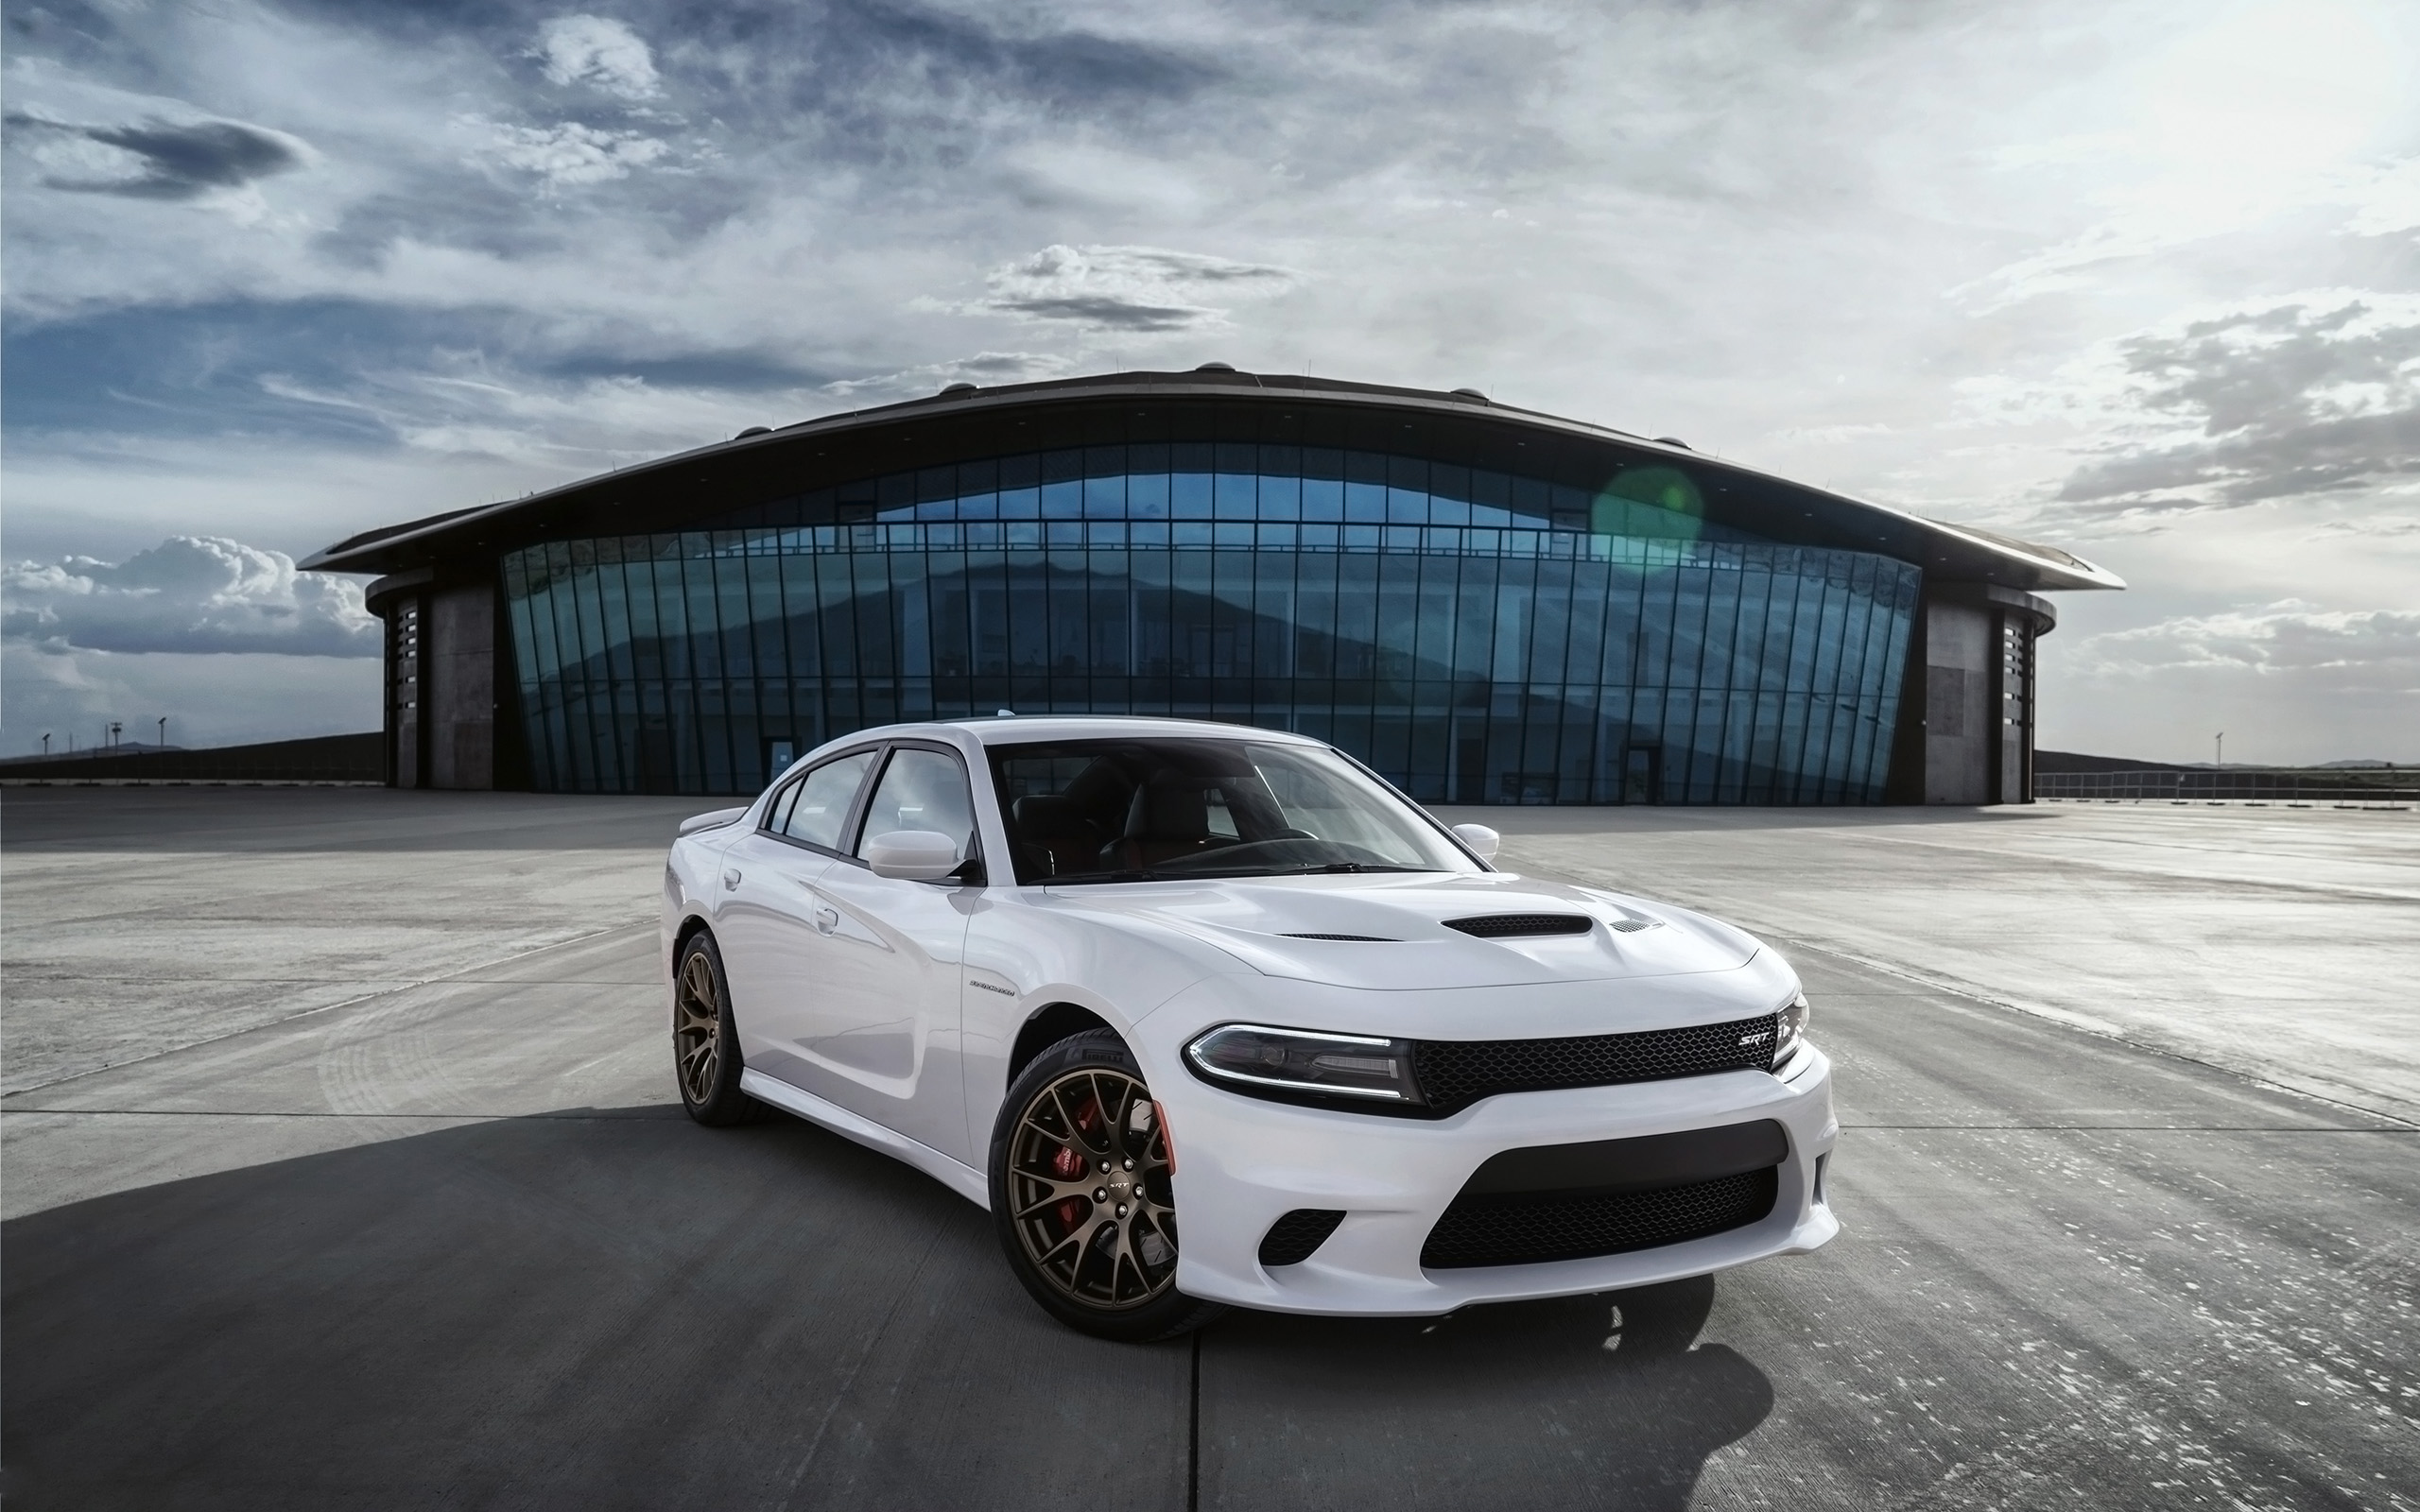 2015 dodge charger srt hellcat wallpaper | hd car wallpapers | id #4717